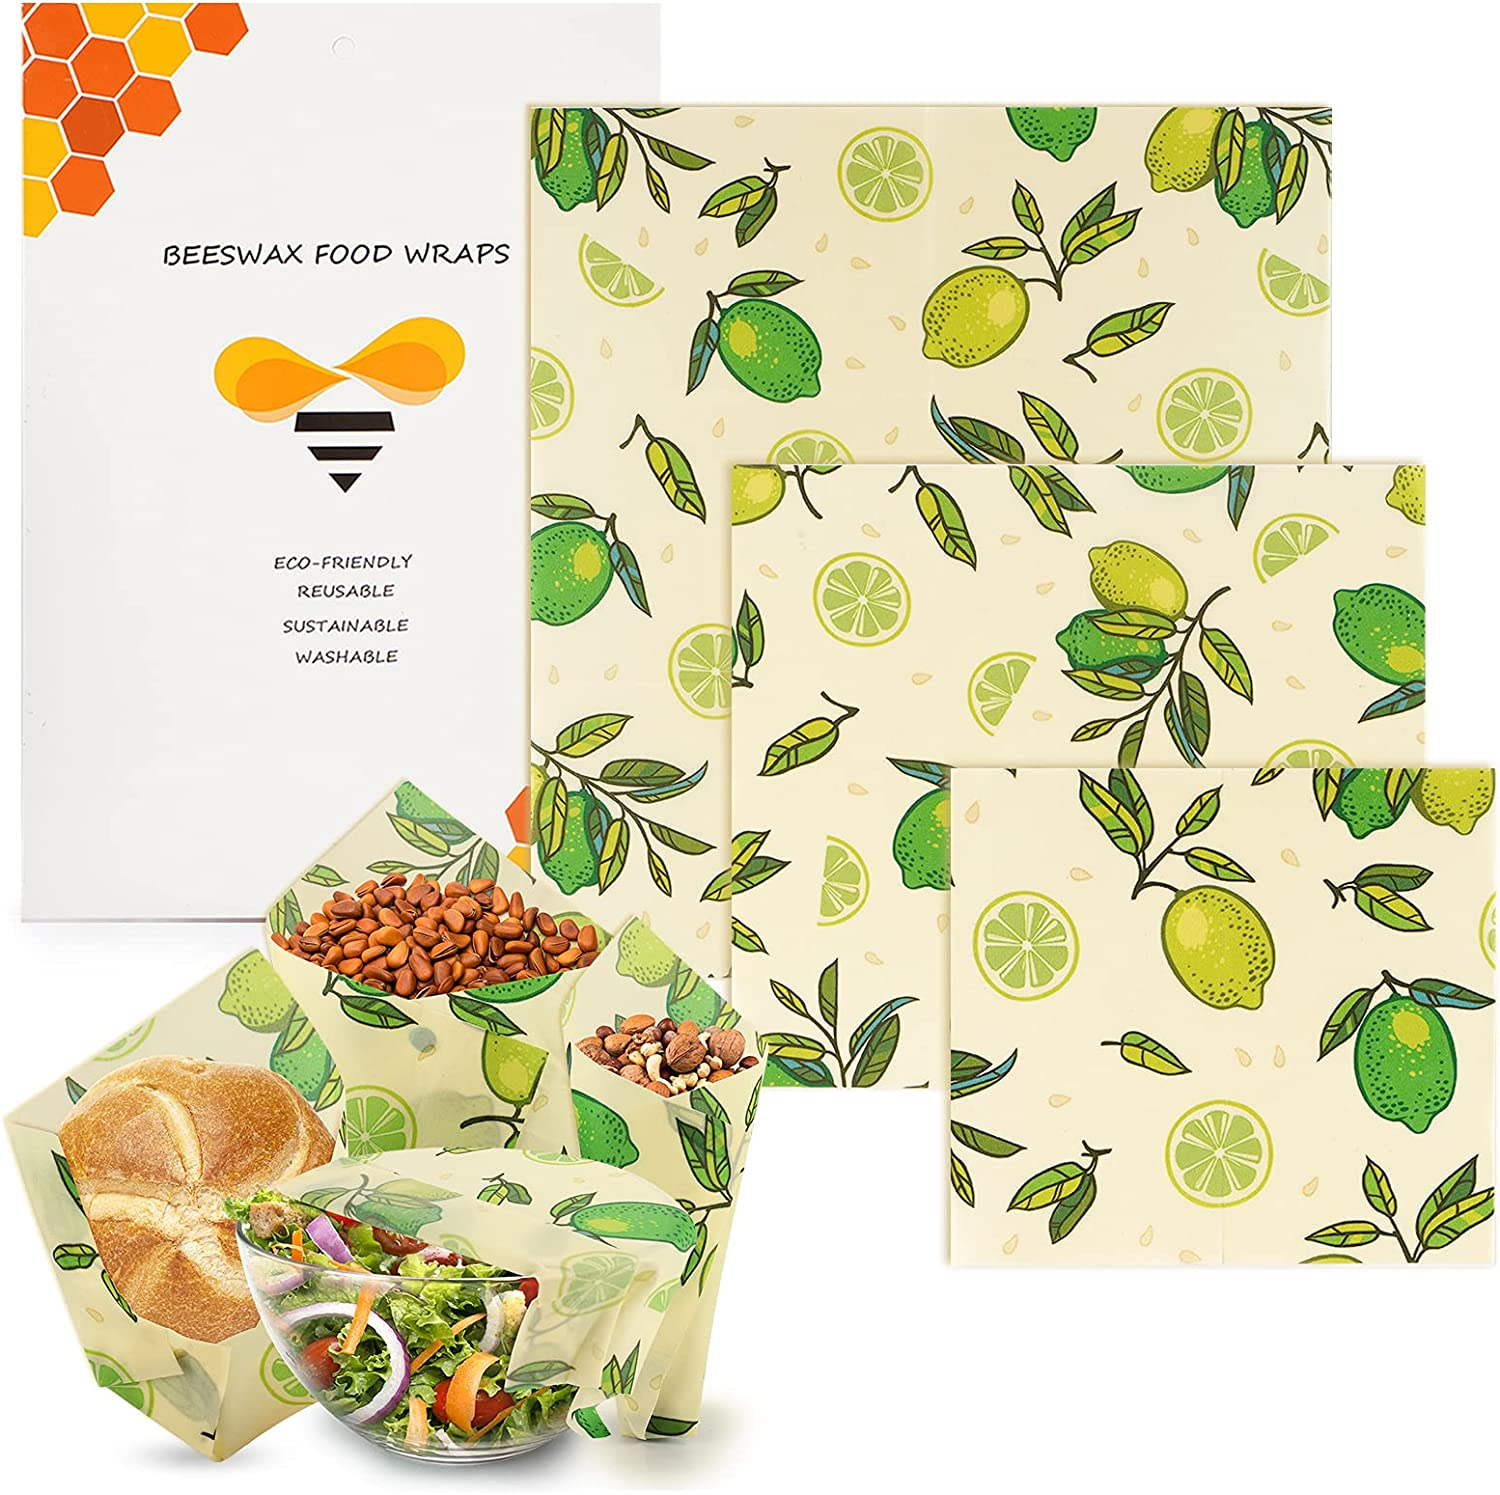 Beeswax Wrap, O-CONN Reusable and Sustainable Beeswax Wraps for Food, Eco Friendly, Zero Waste, Plastic Free Bees Wrap for Food Storage, 3 Sizes (S, M, L)